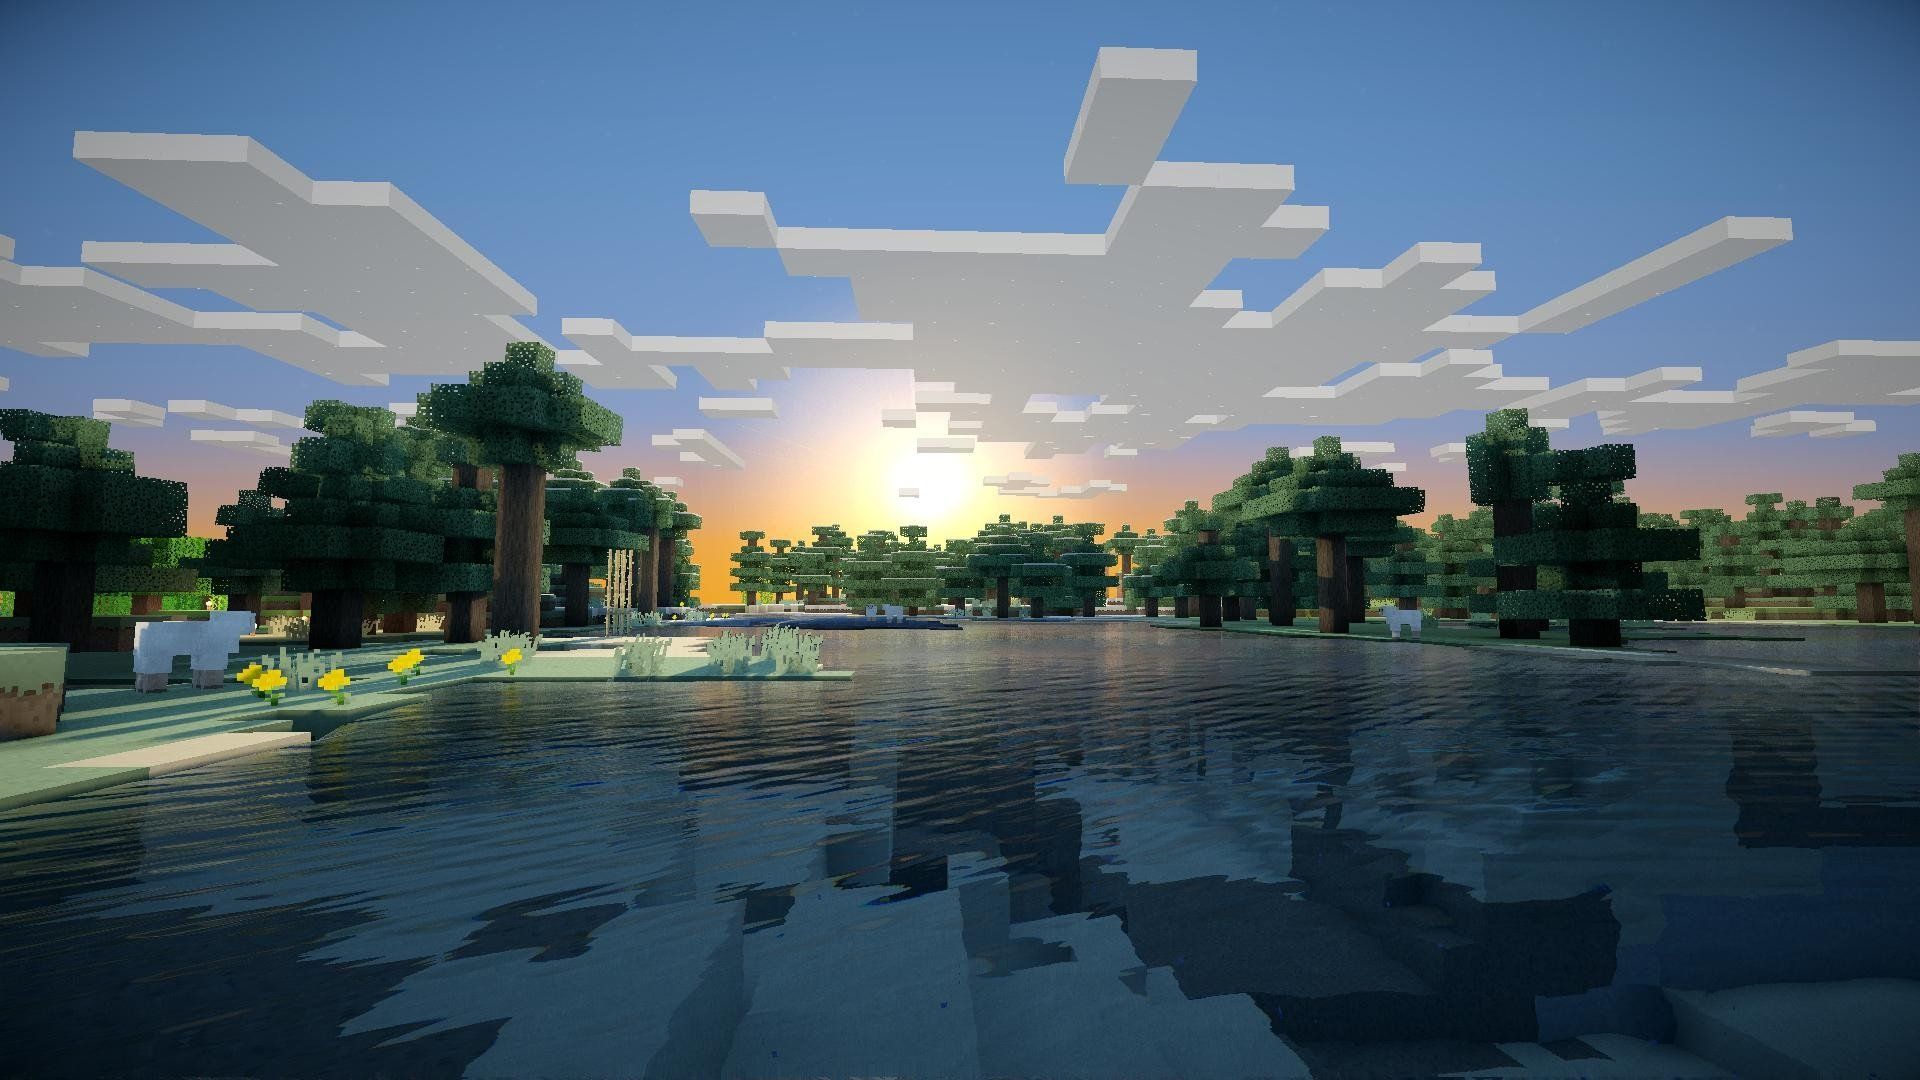 sunrise minecraft wallpaper 1920x1080 259680 wallpaperup